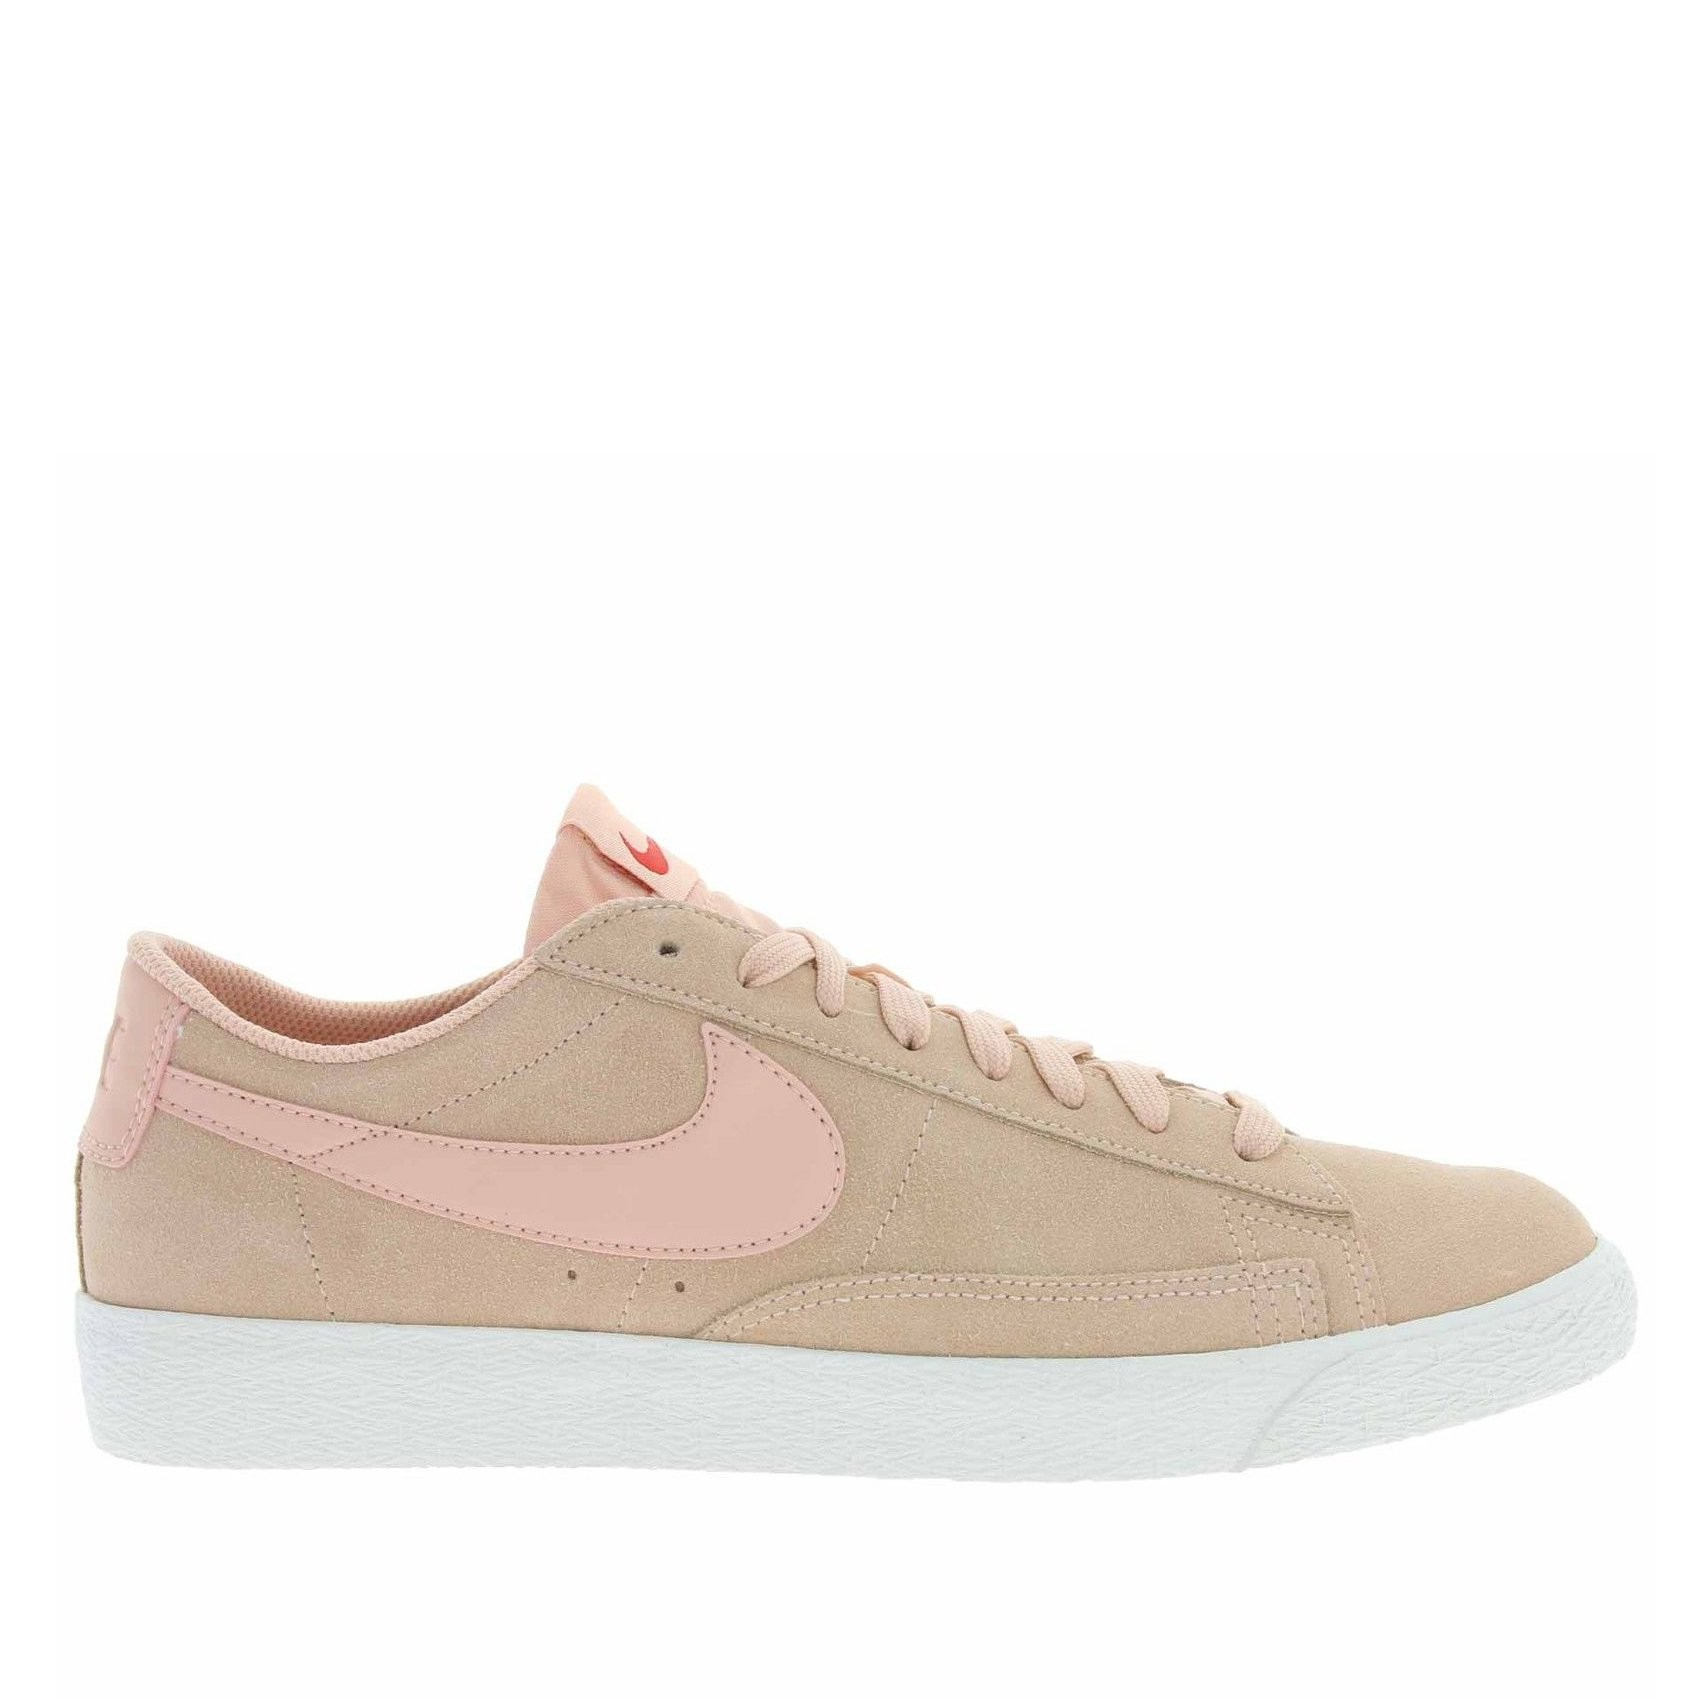 371760-801 Nike Blazer Low Chaussures - Orange/Sail